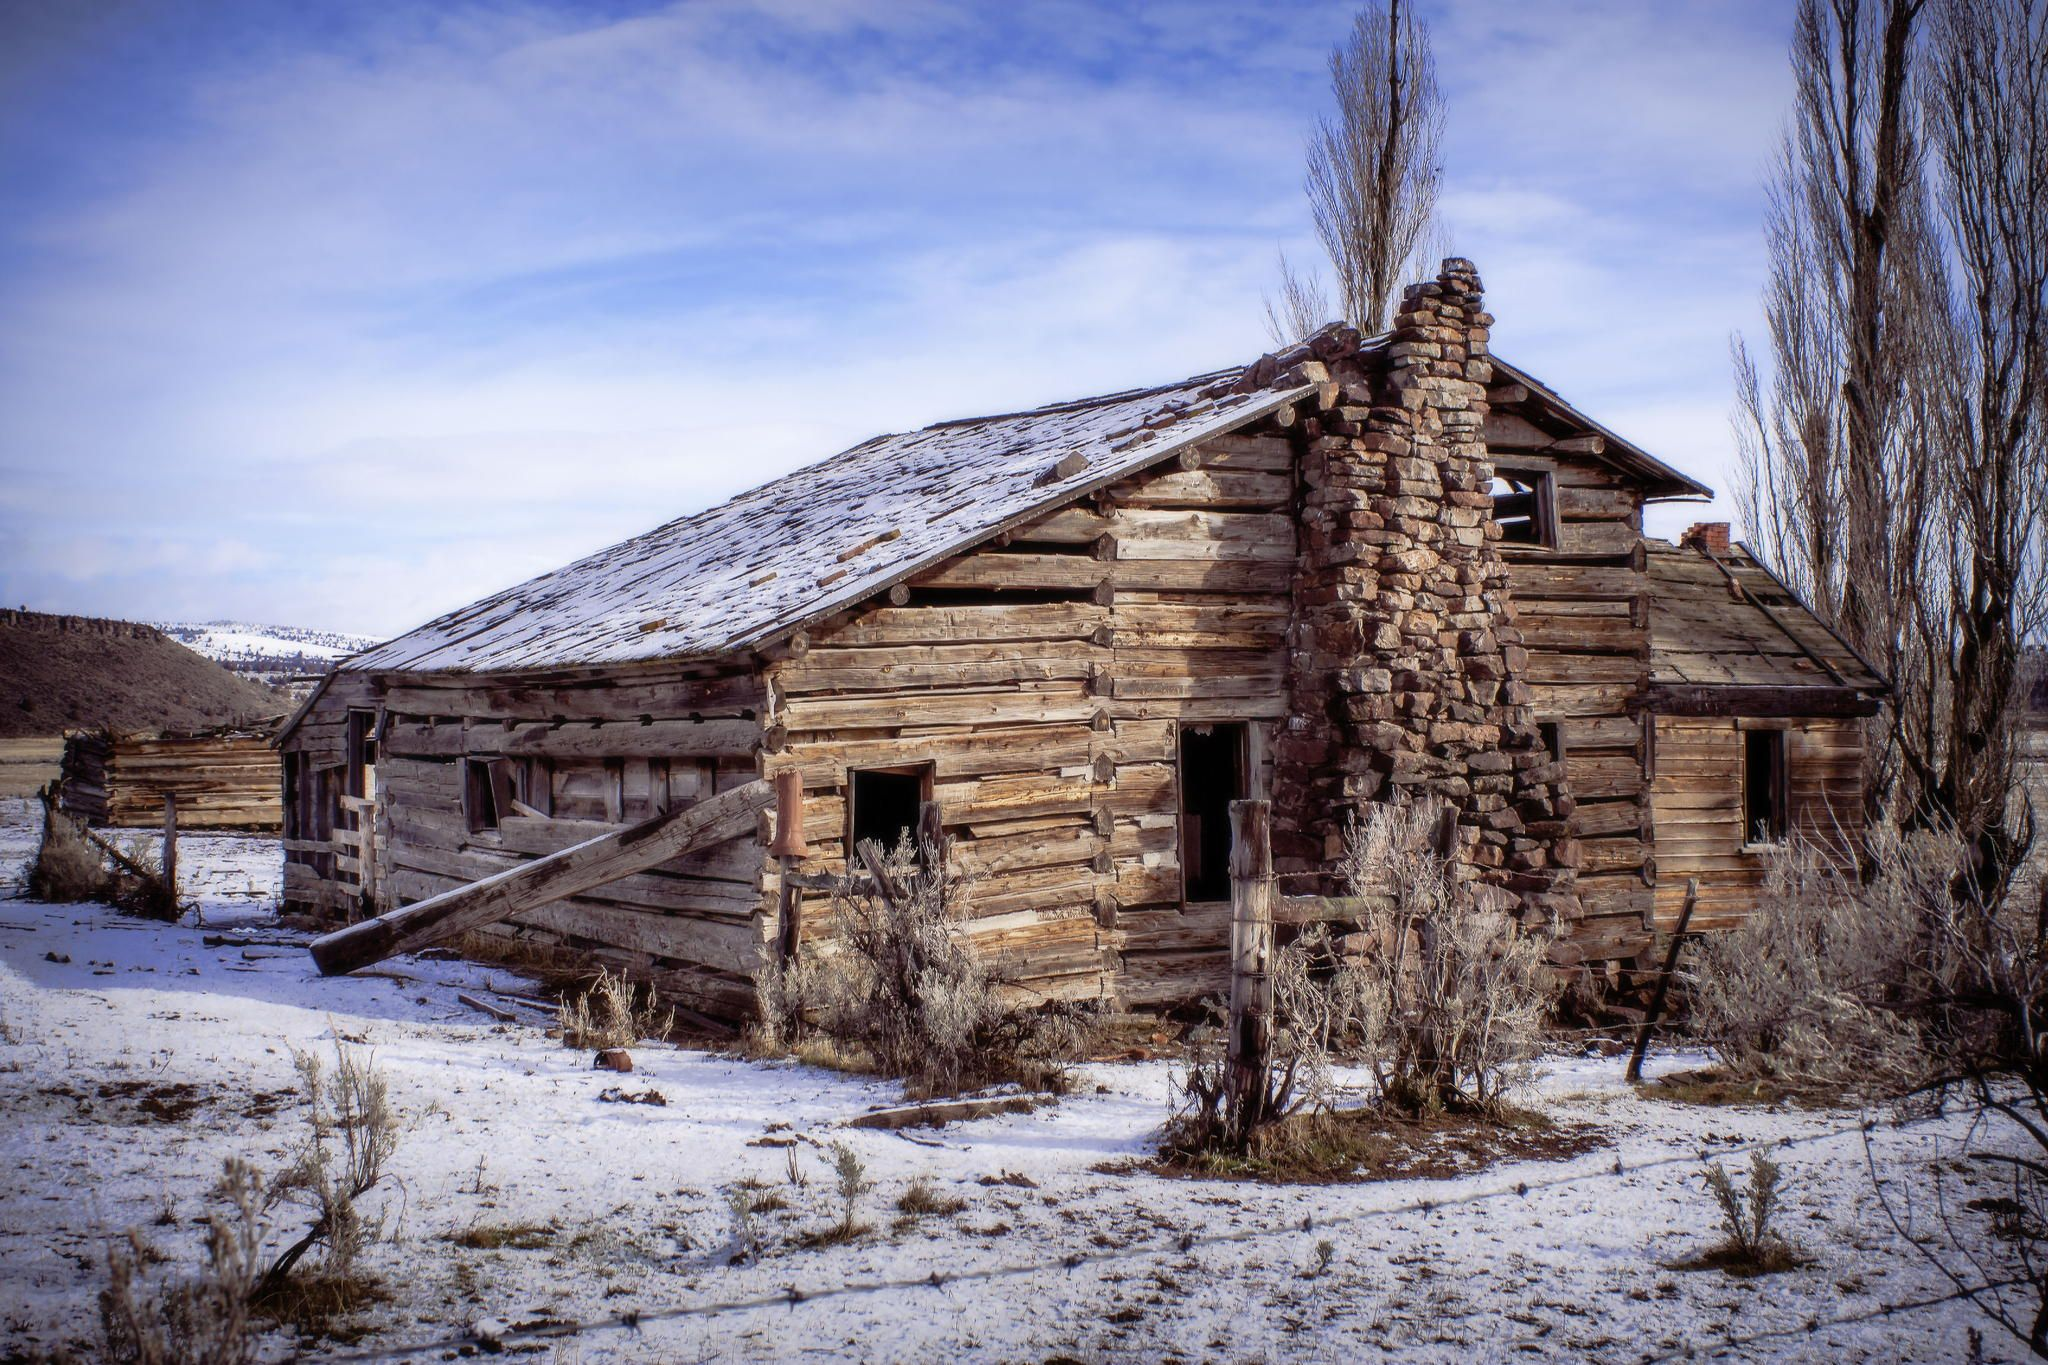 Abandoned in Time by Michael Kinnaman on 500px